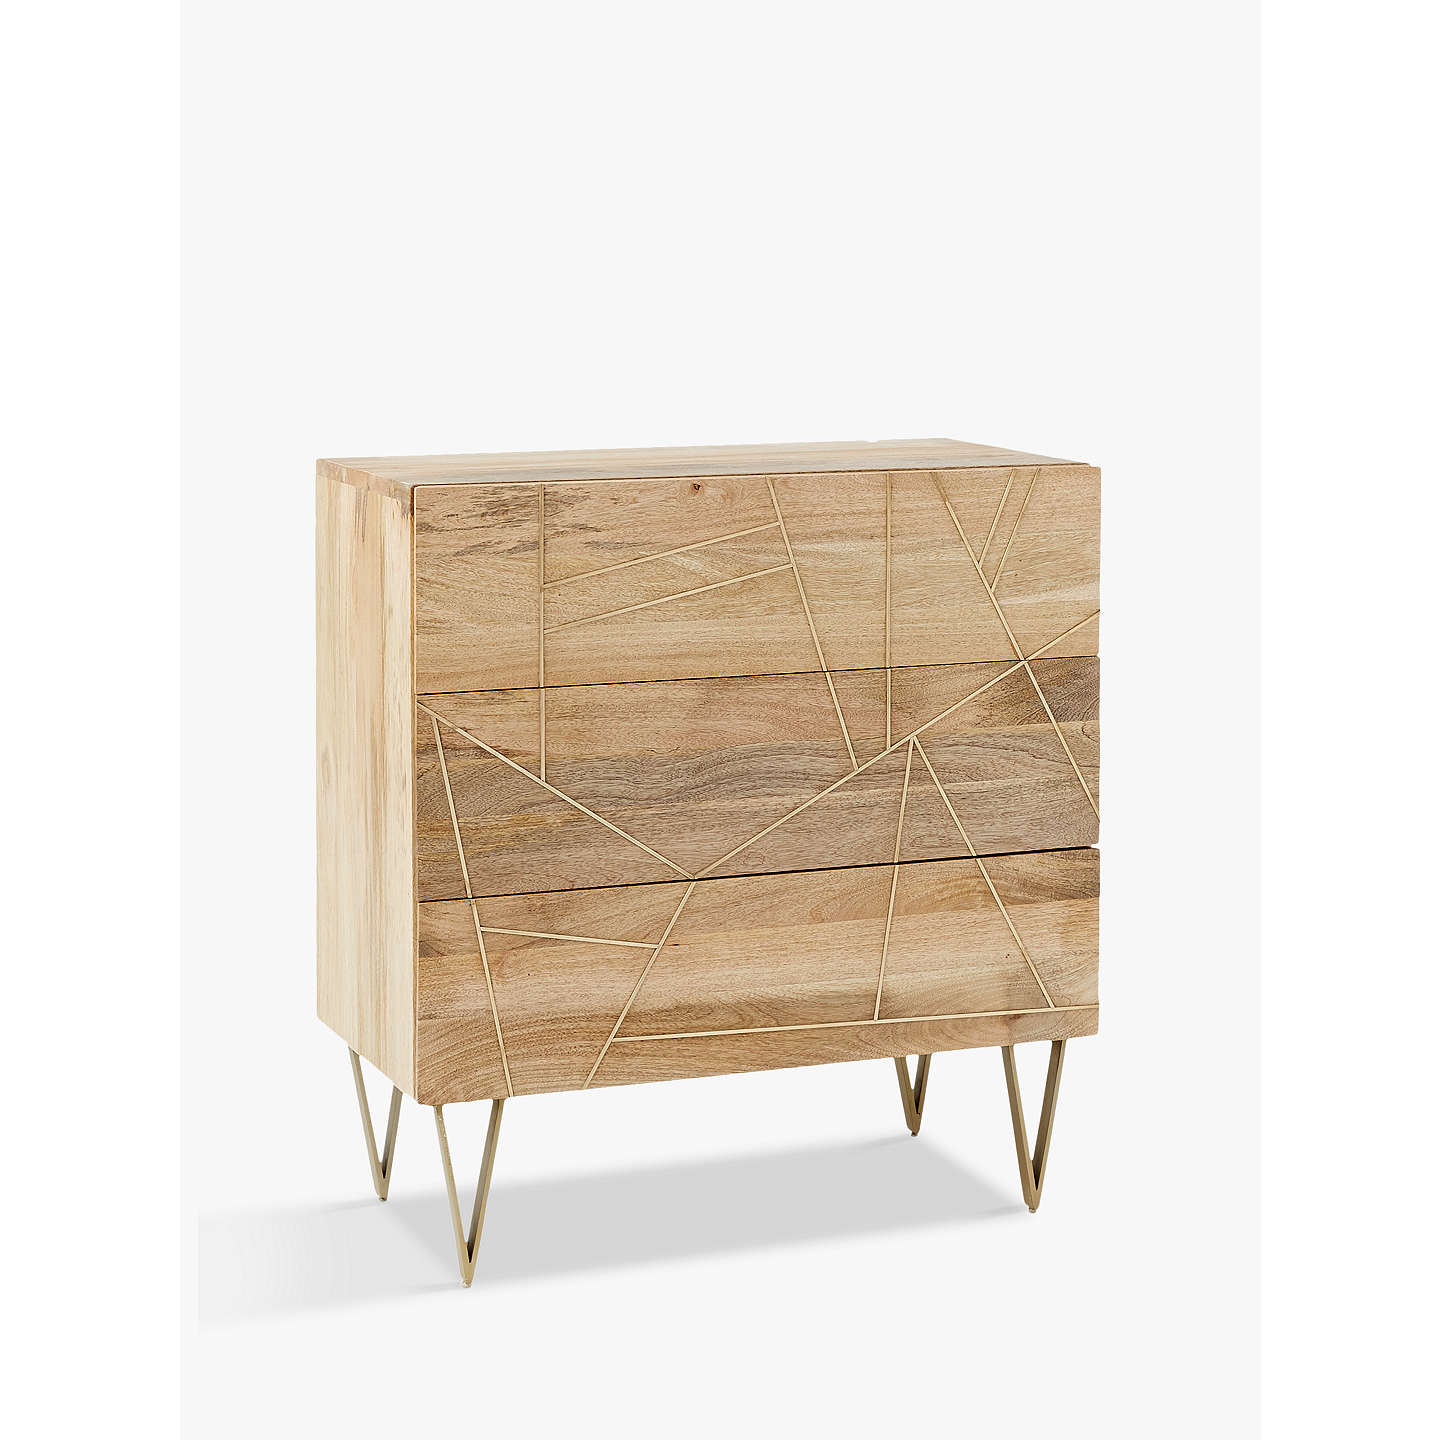 BuyRoar + Rabbit for west elm Geo Inlay 3 Drawer Chest Online at johnlewis.com